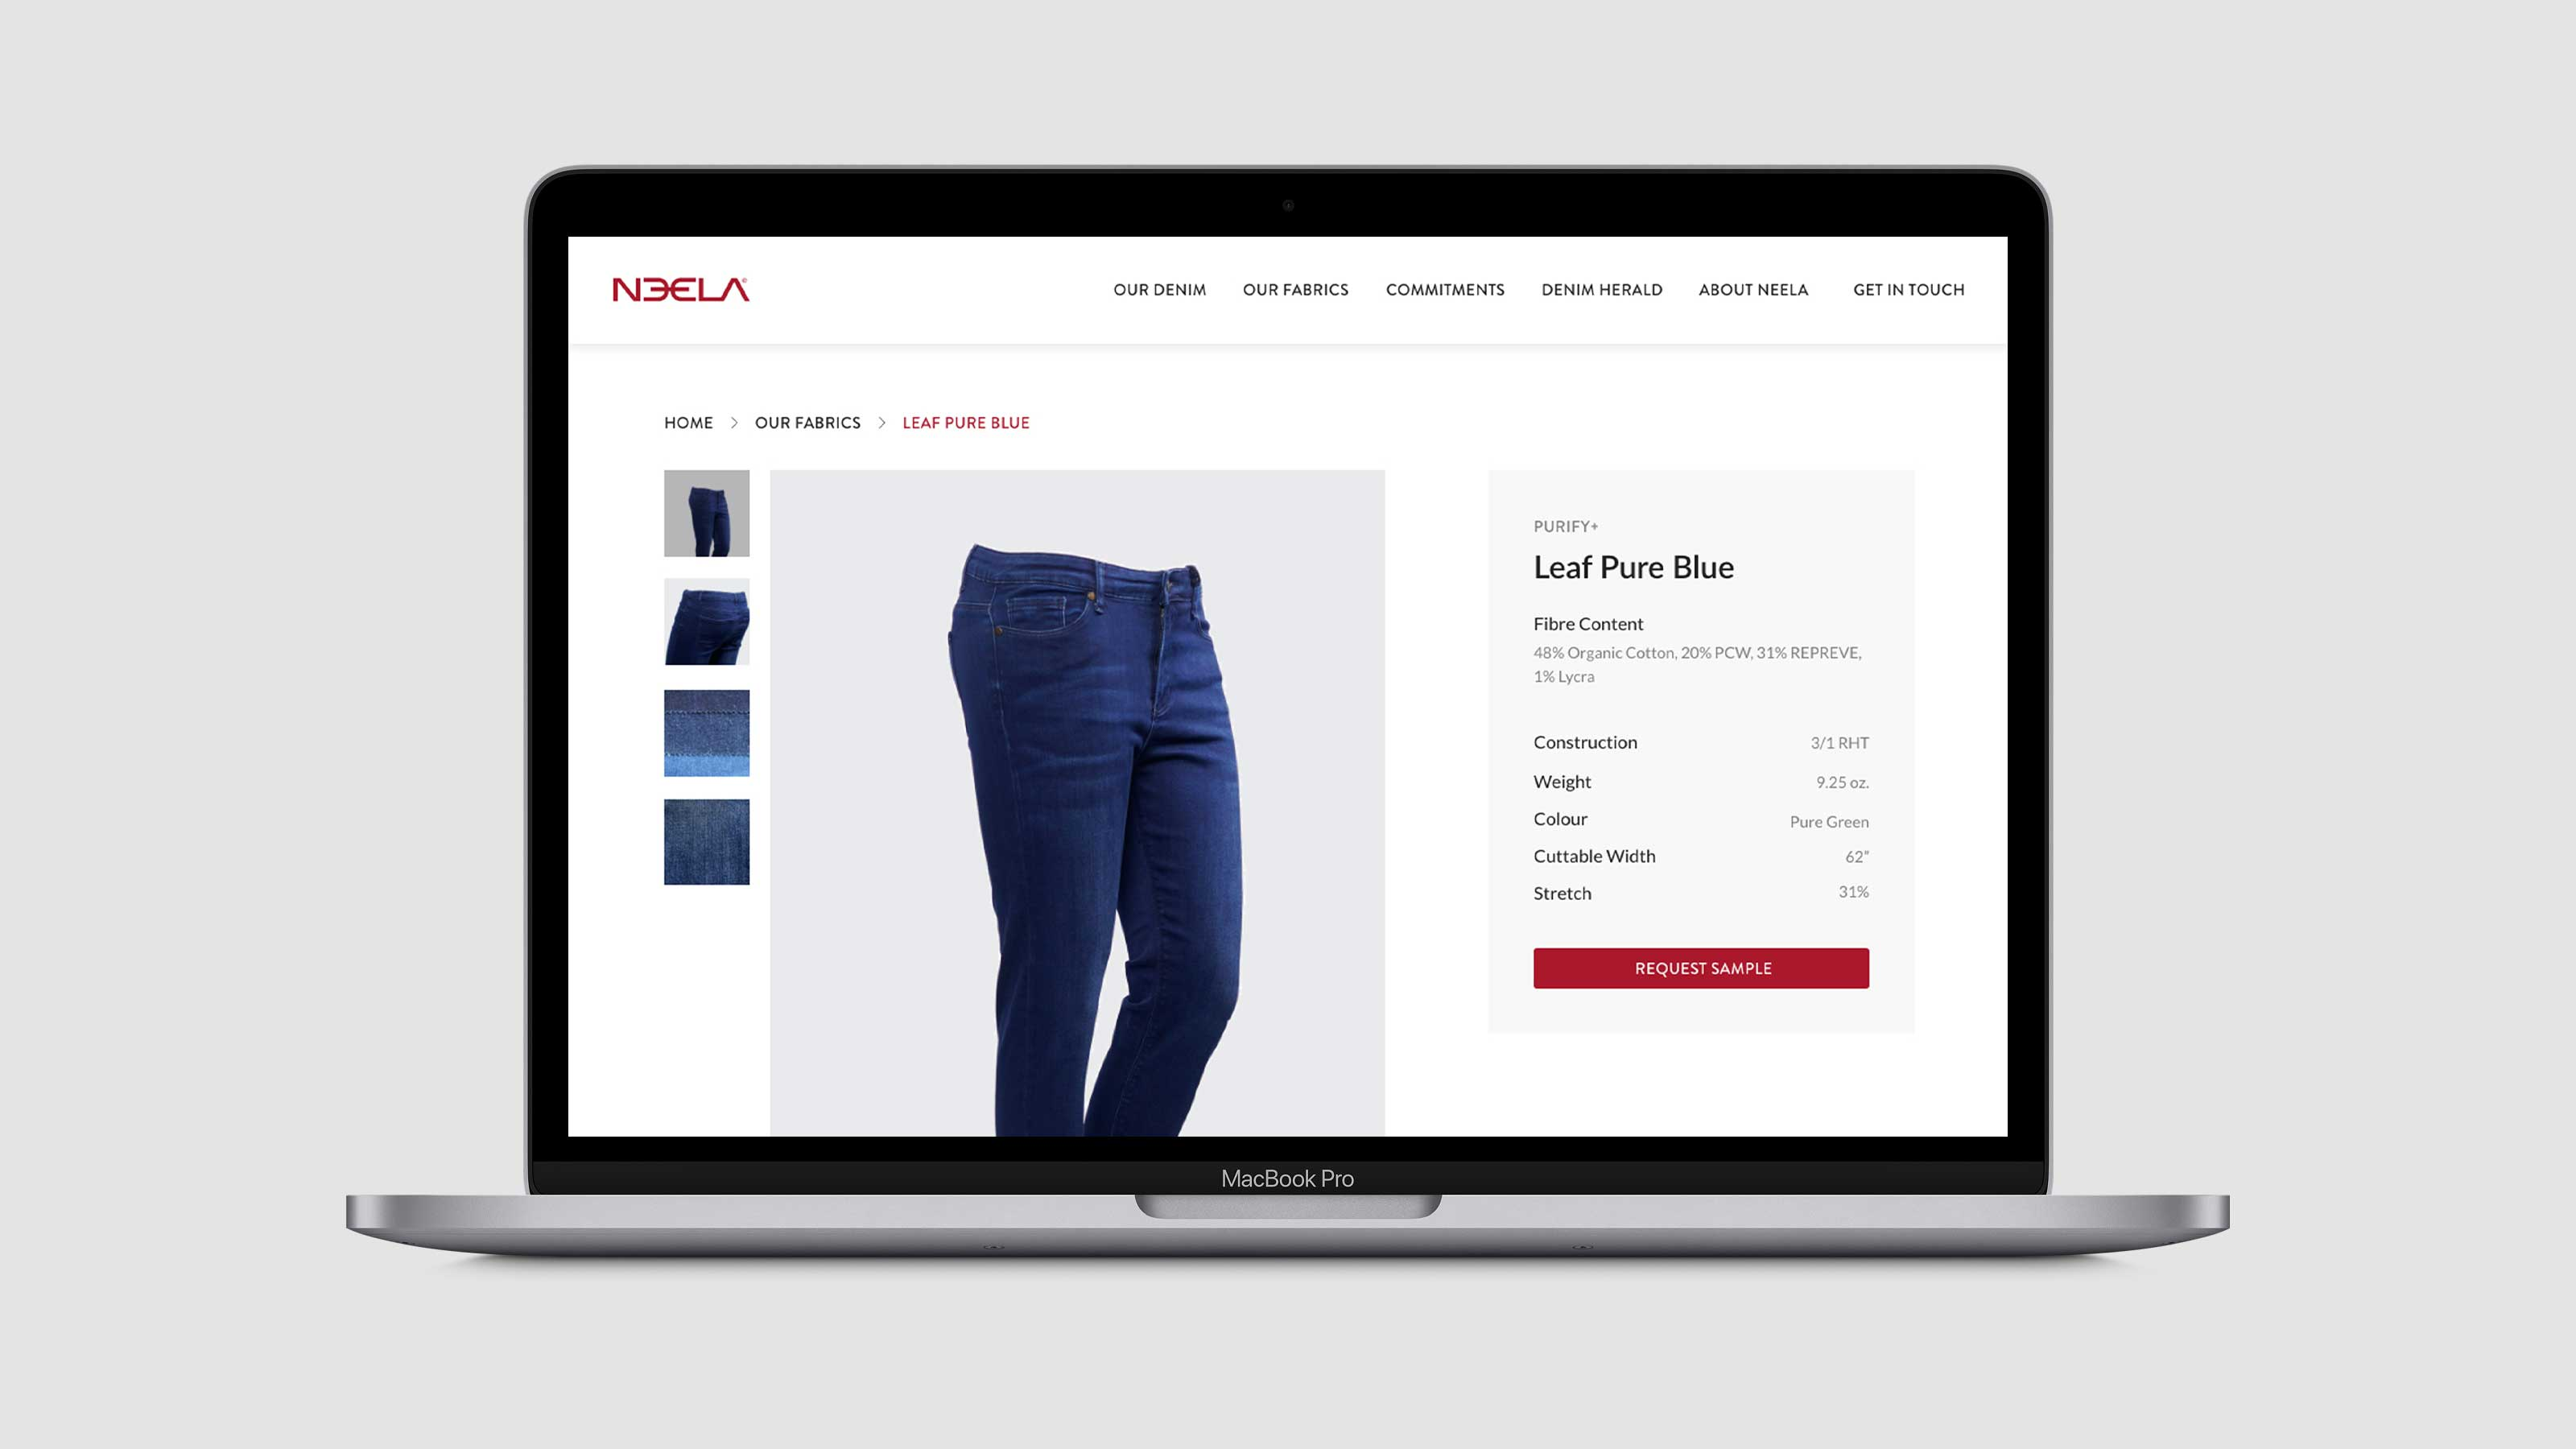 Neela Fabric Details Page